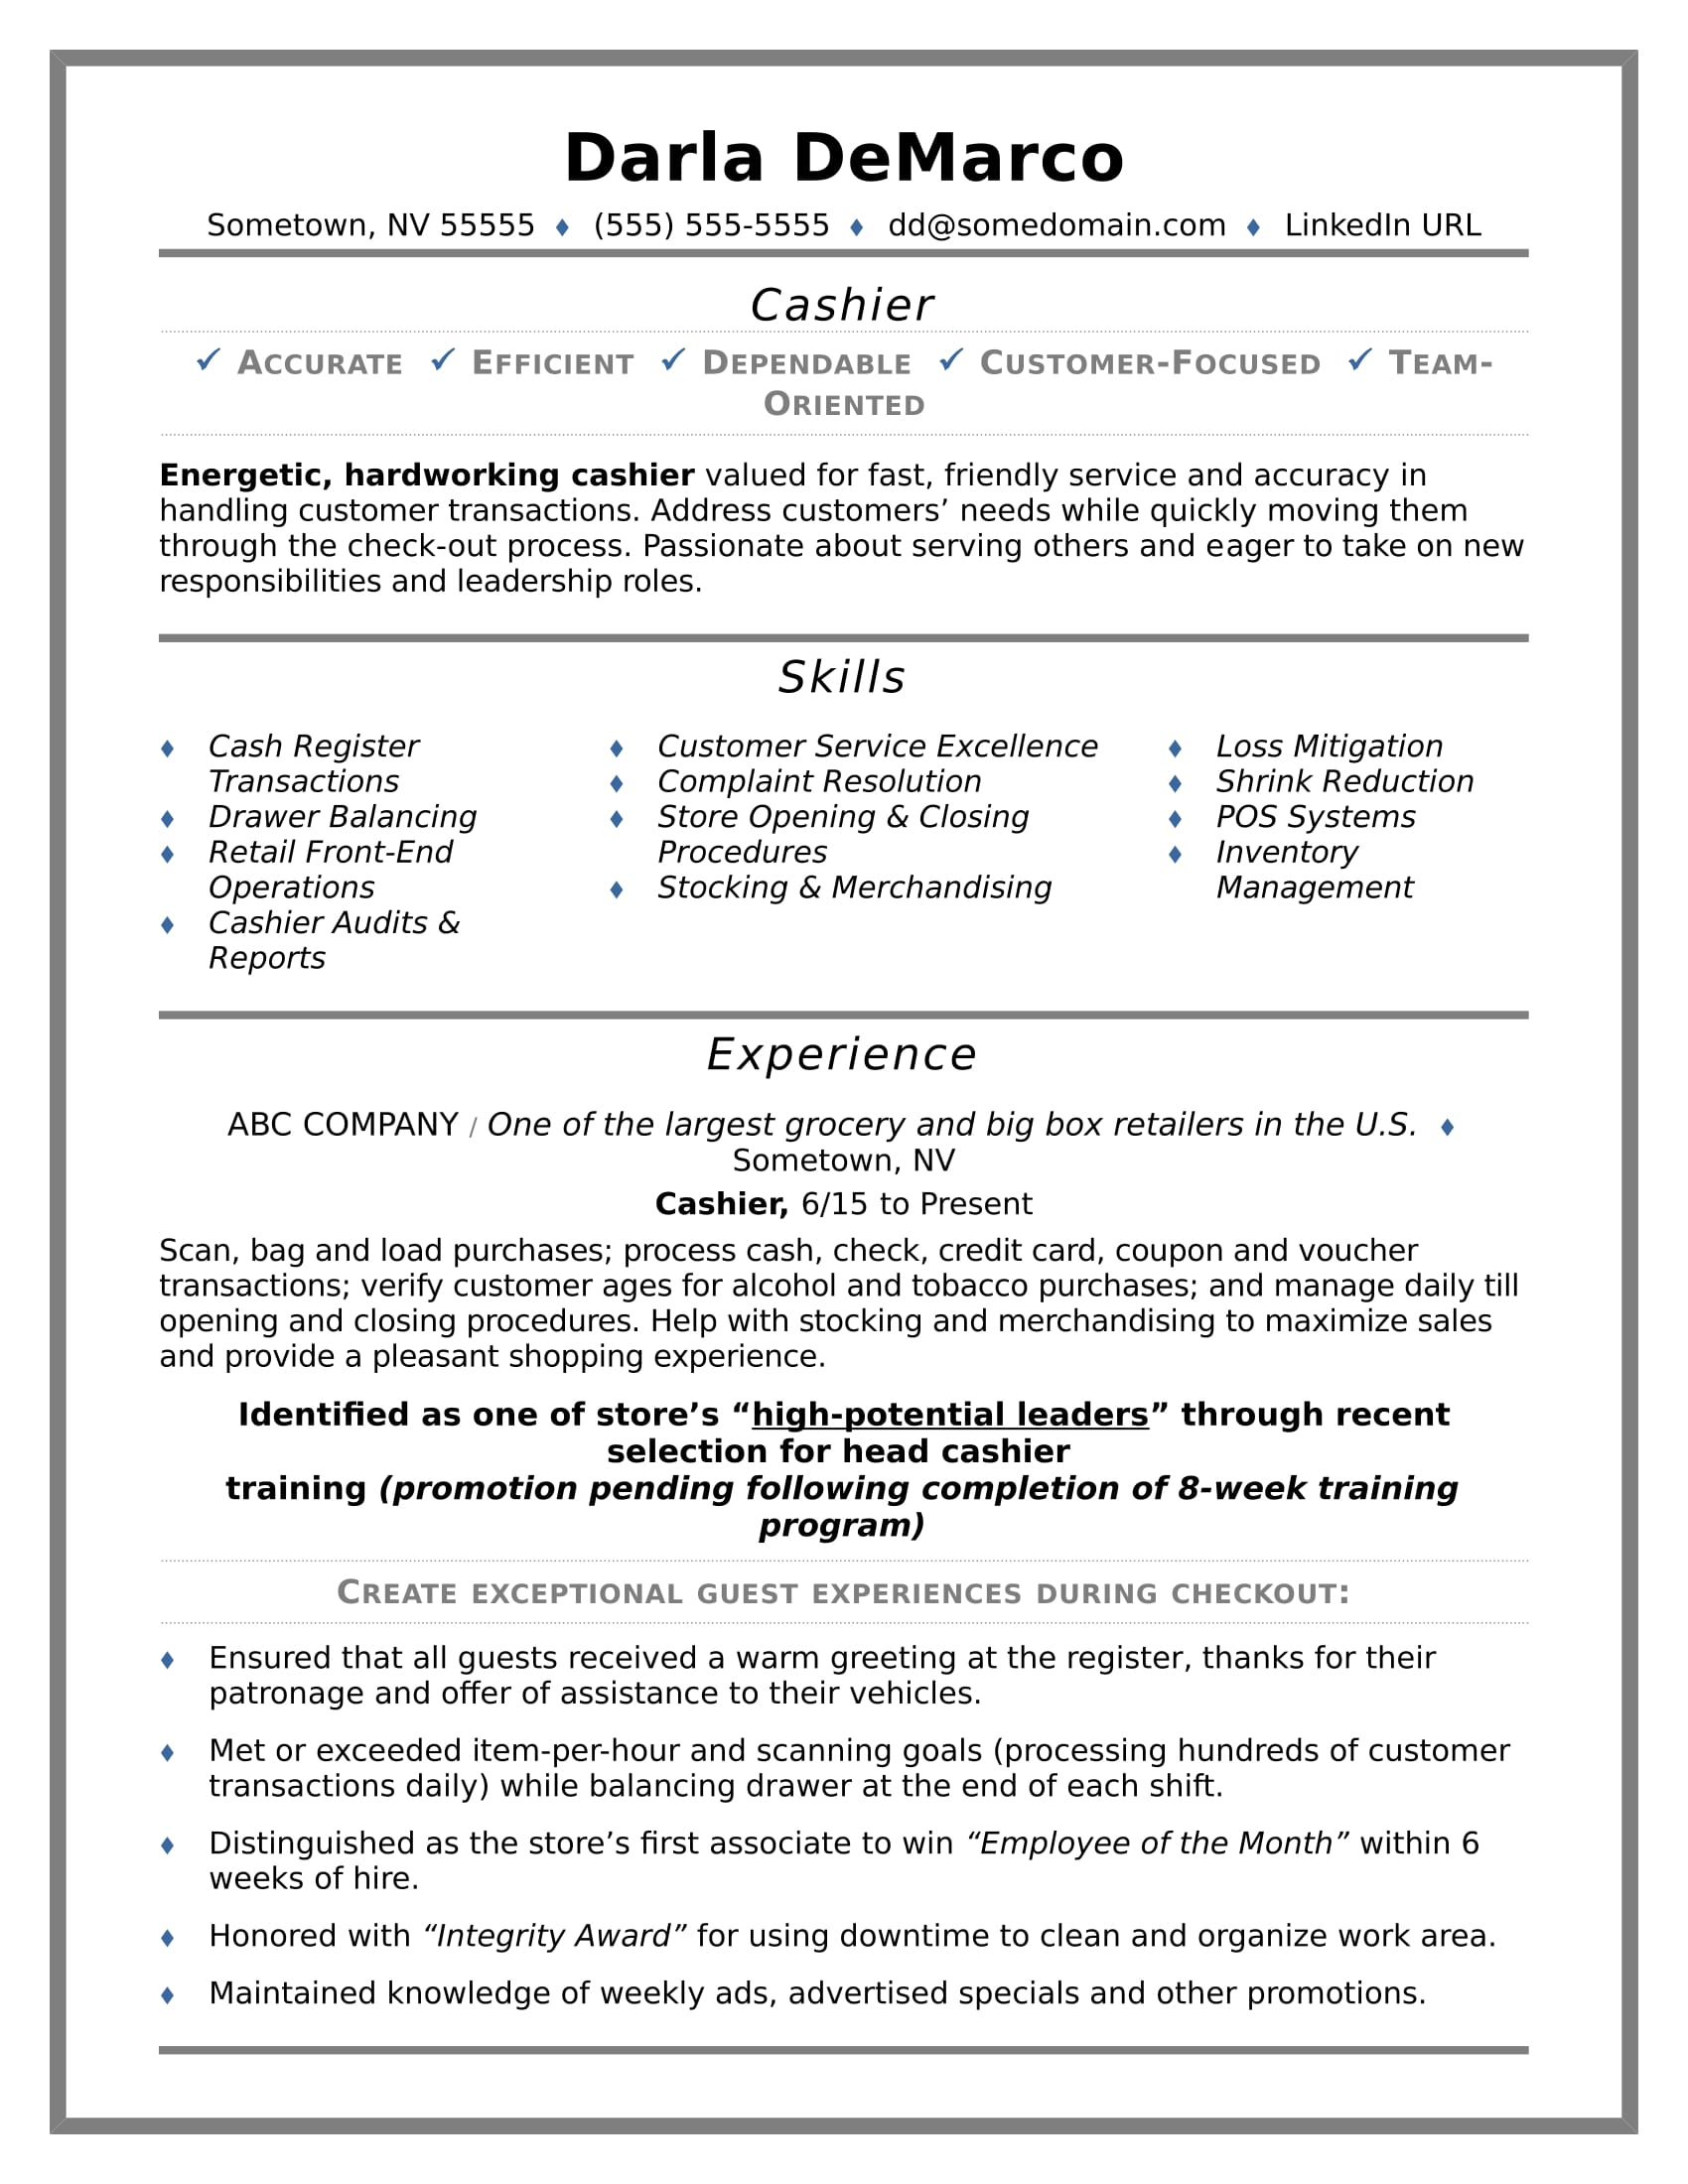 Cashier Resume Sample Monstercom - Resume examples